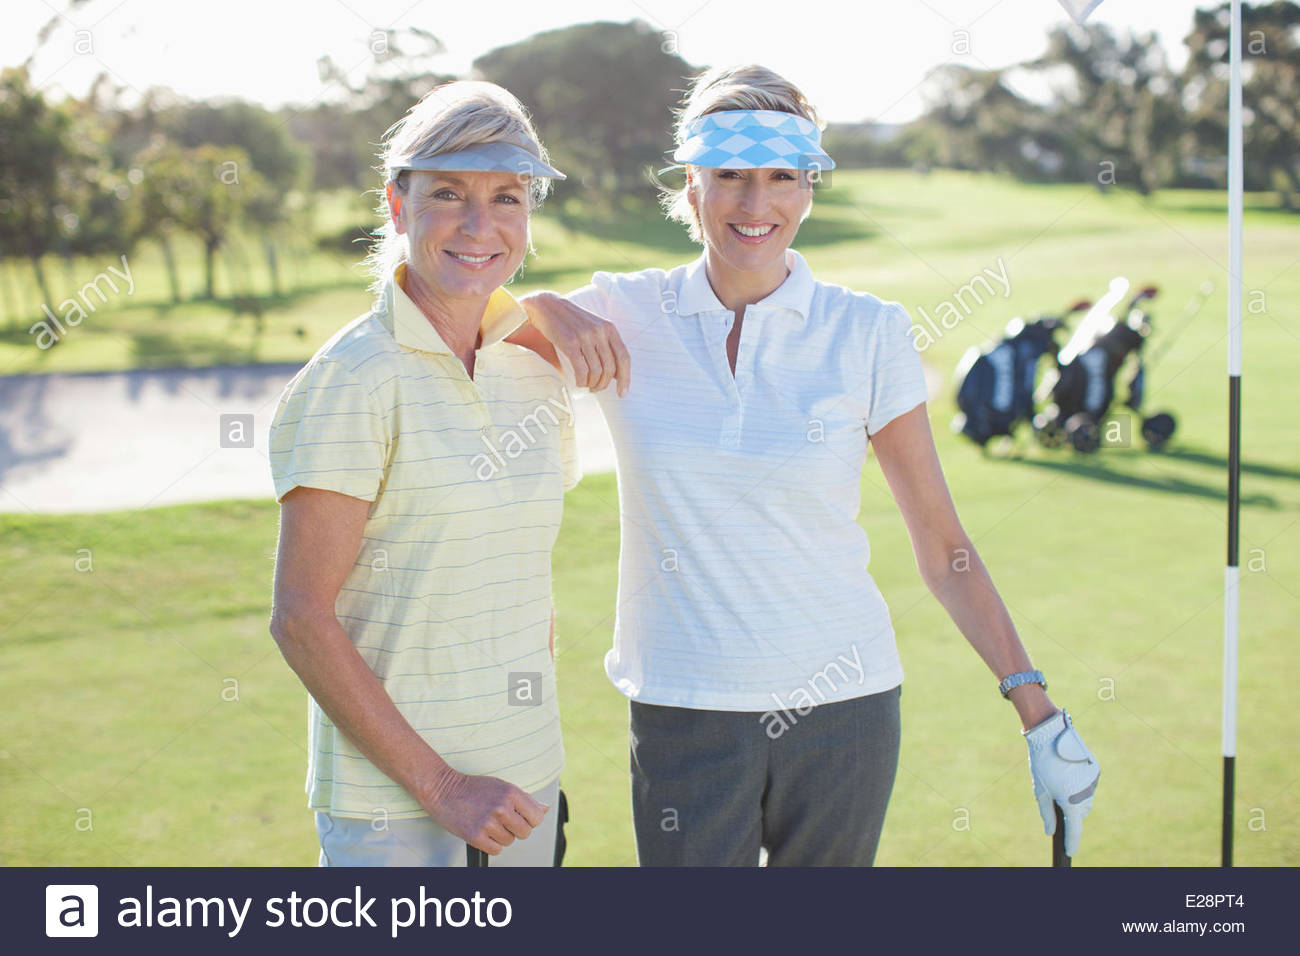 Friends posing on golf course - Stock Image